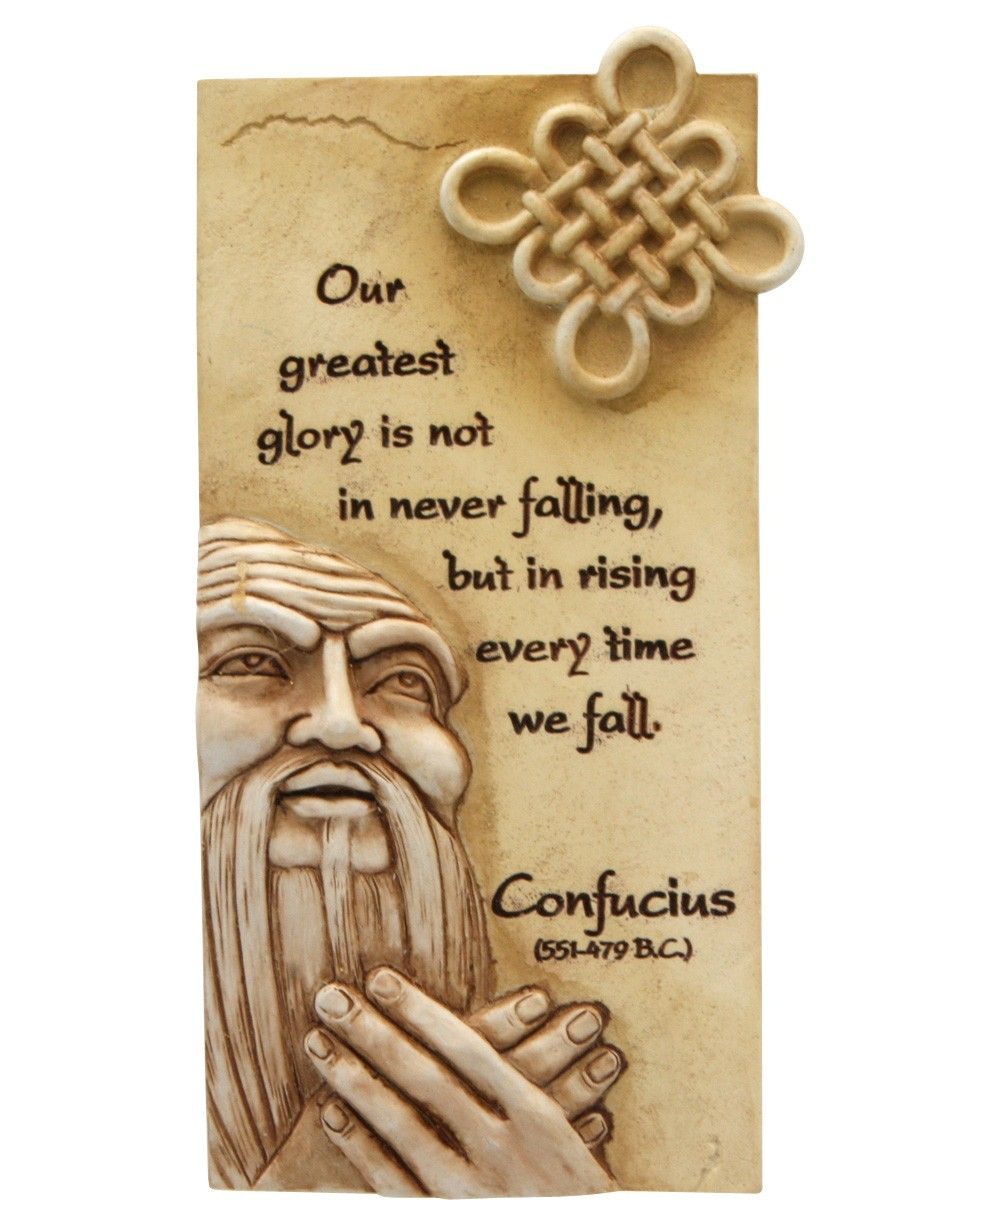 Inspirational Confucius wall art, available at BuddhaGroove.com ...